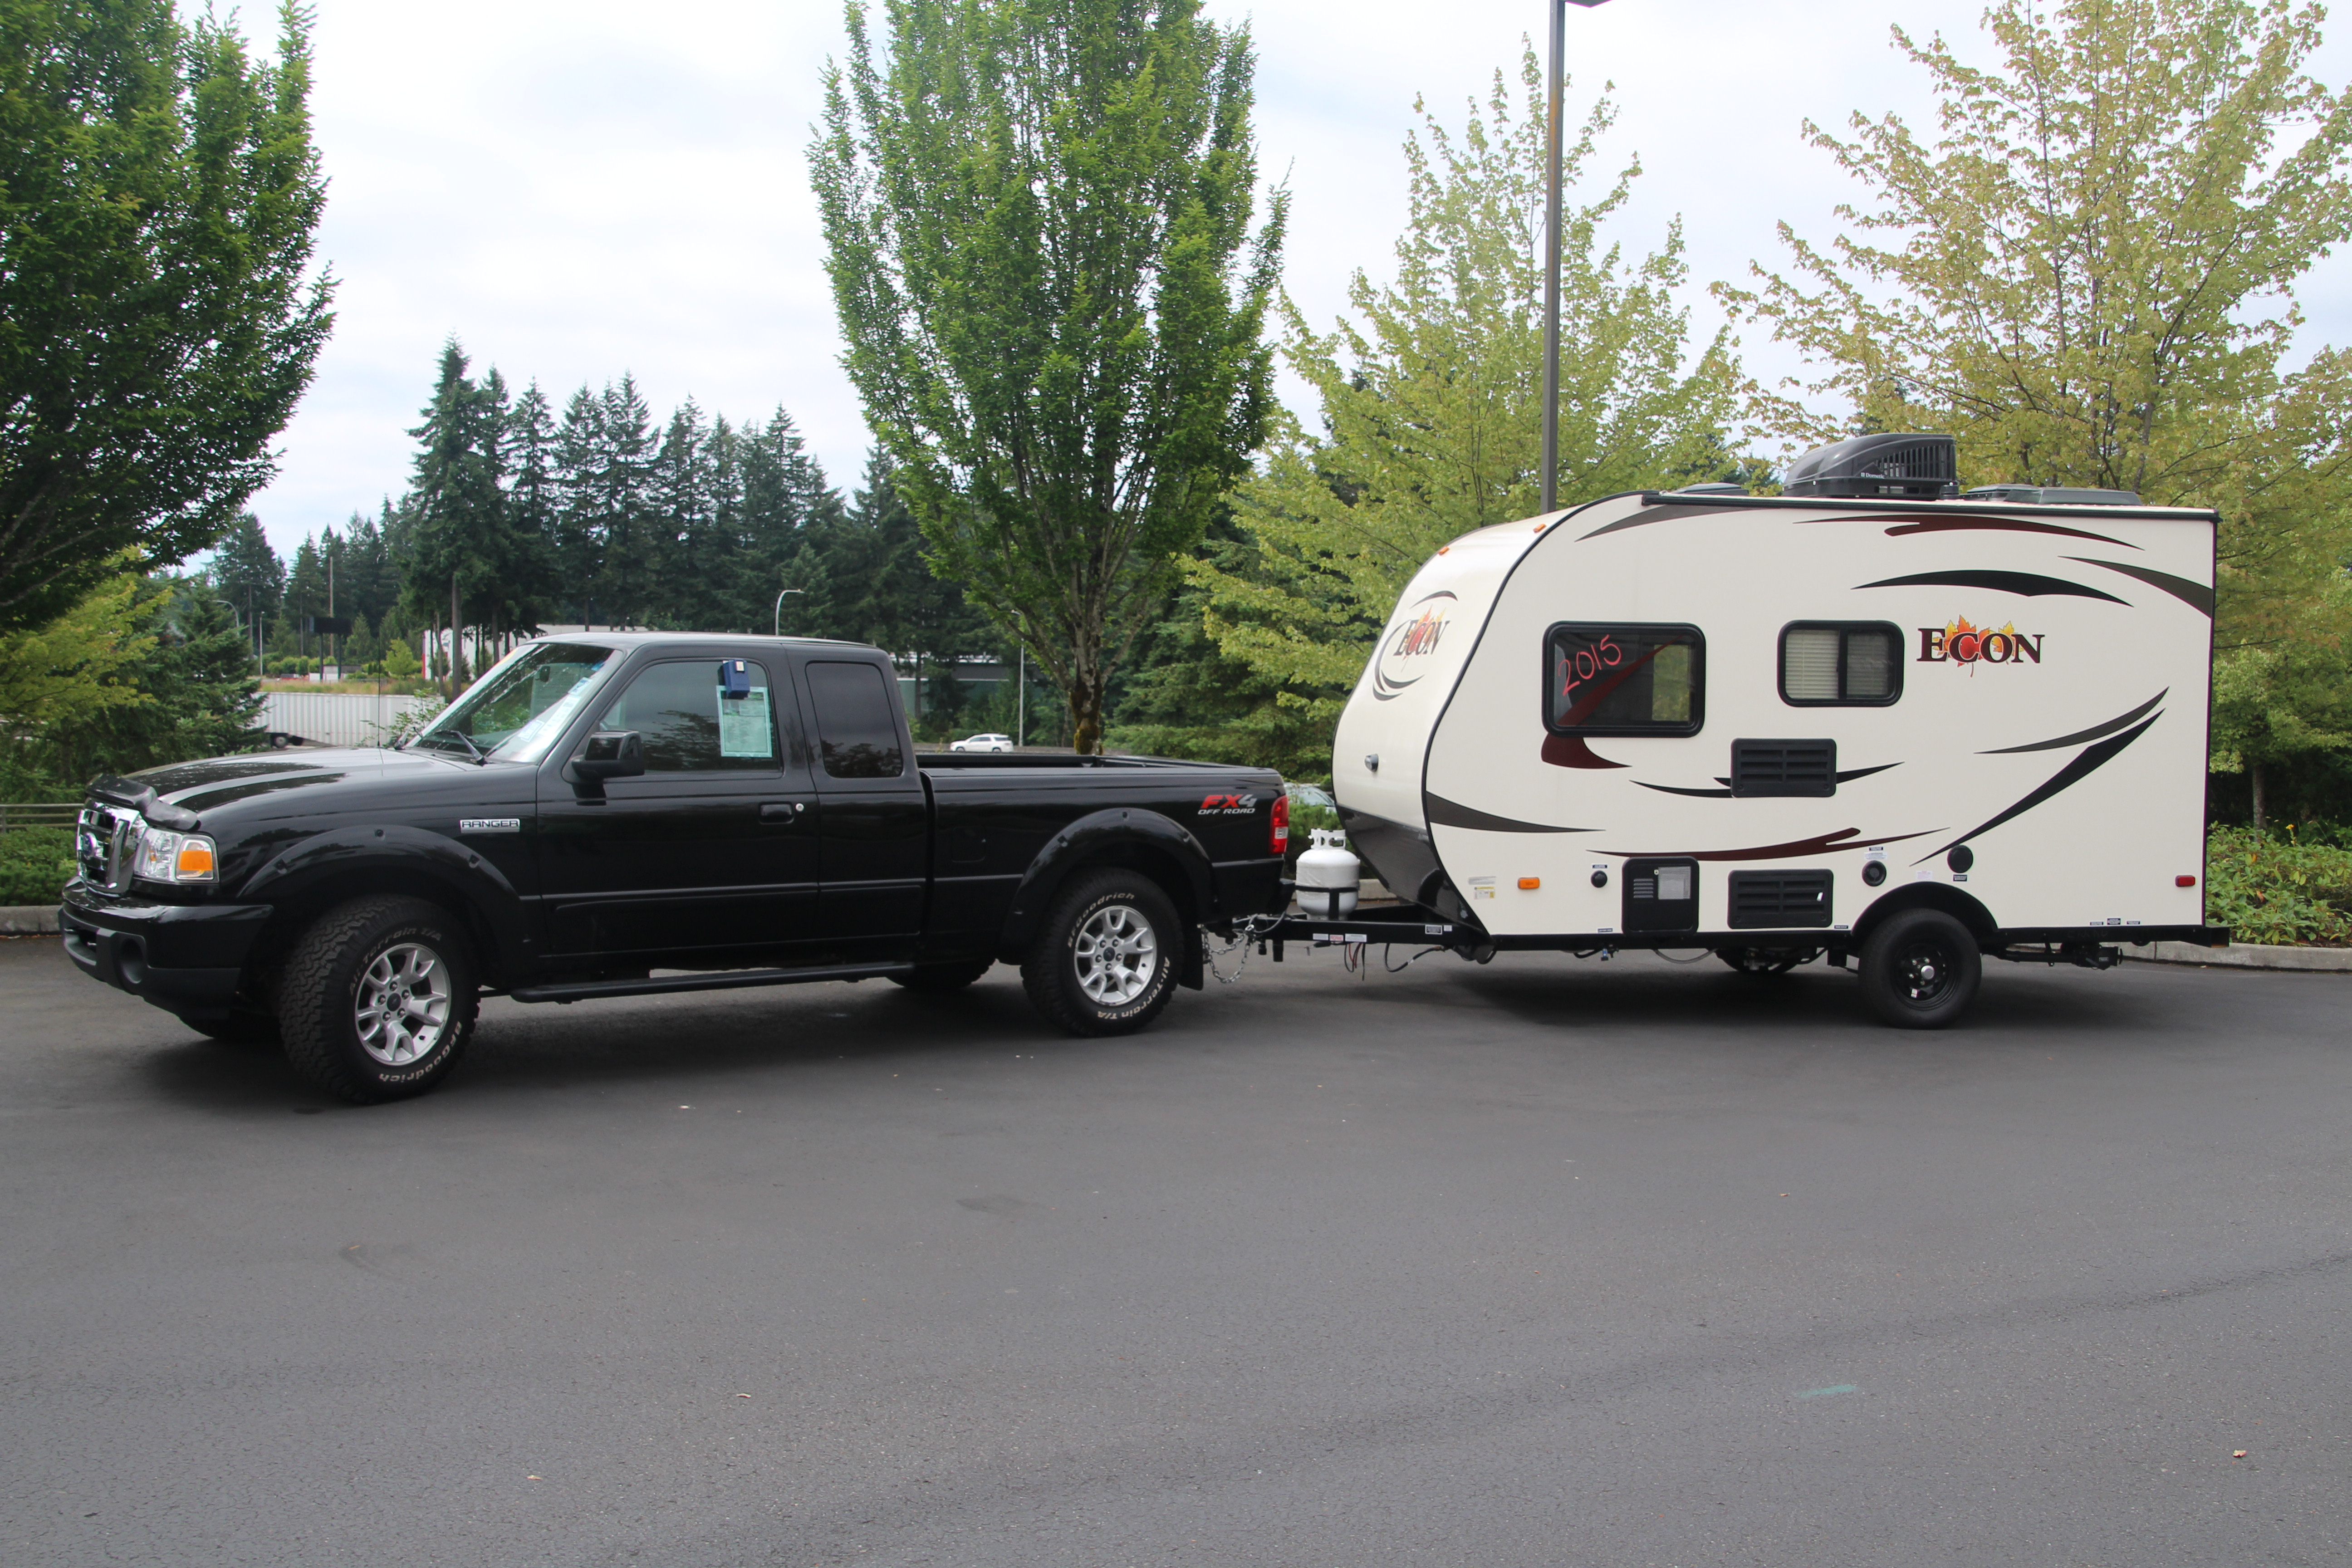 Olympia Auto Mall >> Gear Up for Your Next Adventure at Olympia's Uhlmann RV - ThurstonTalk